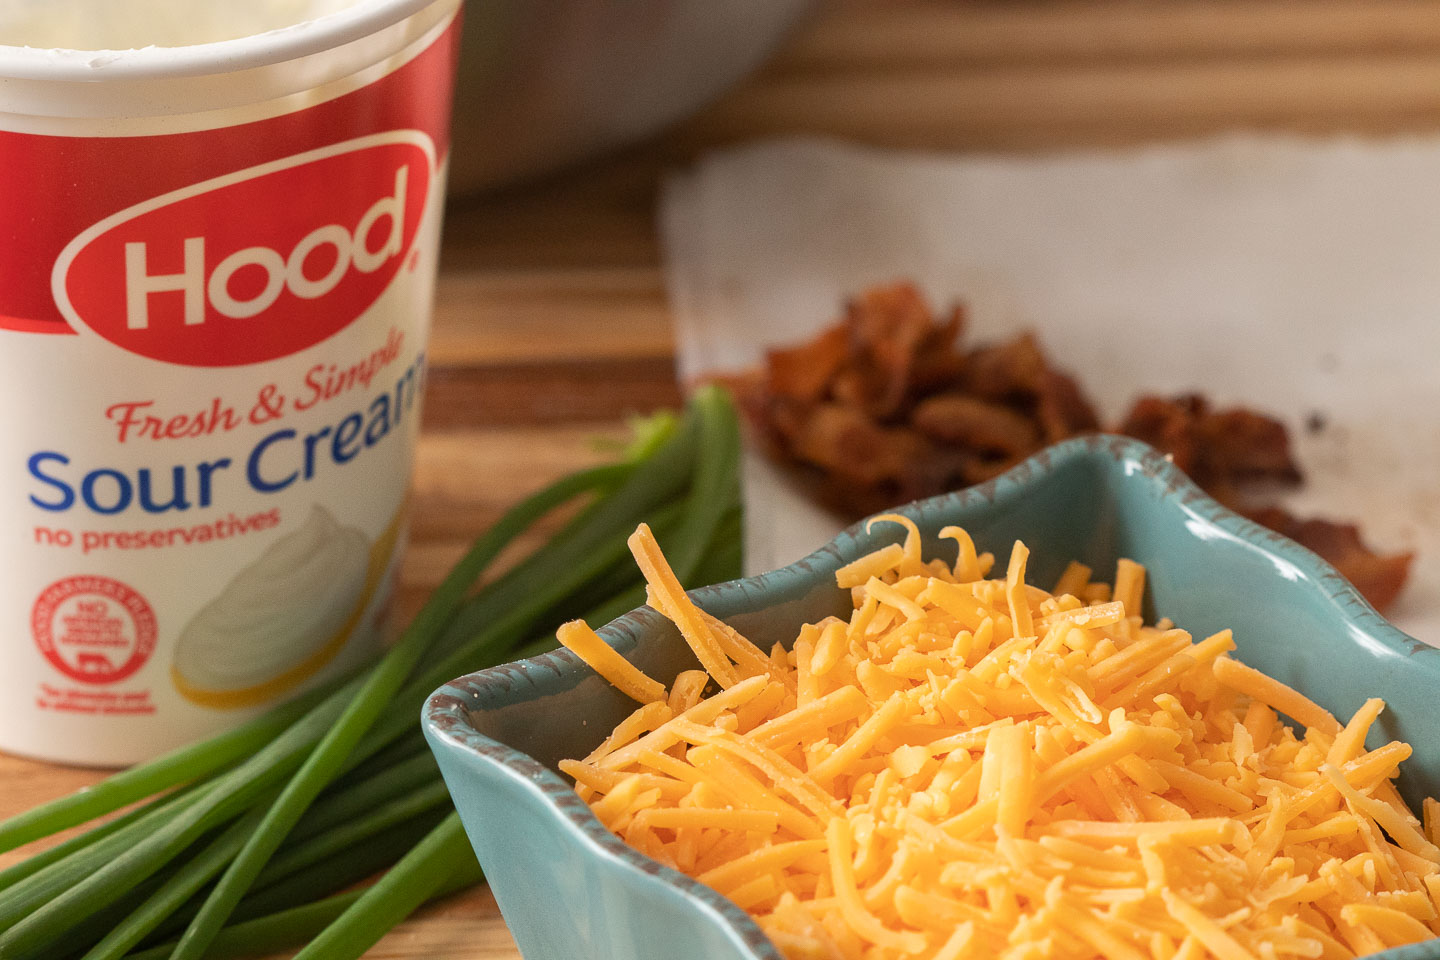 hood sour cream, chives, yellow cheddar in blue ceramic square bowl, bacon bits on napkin